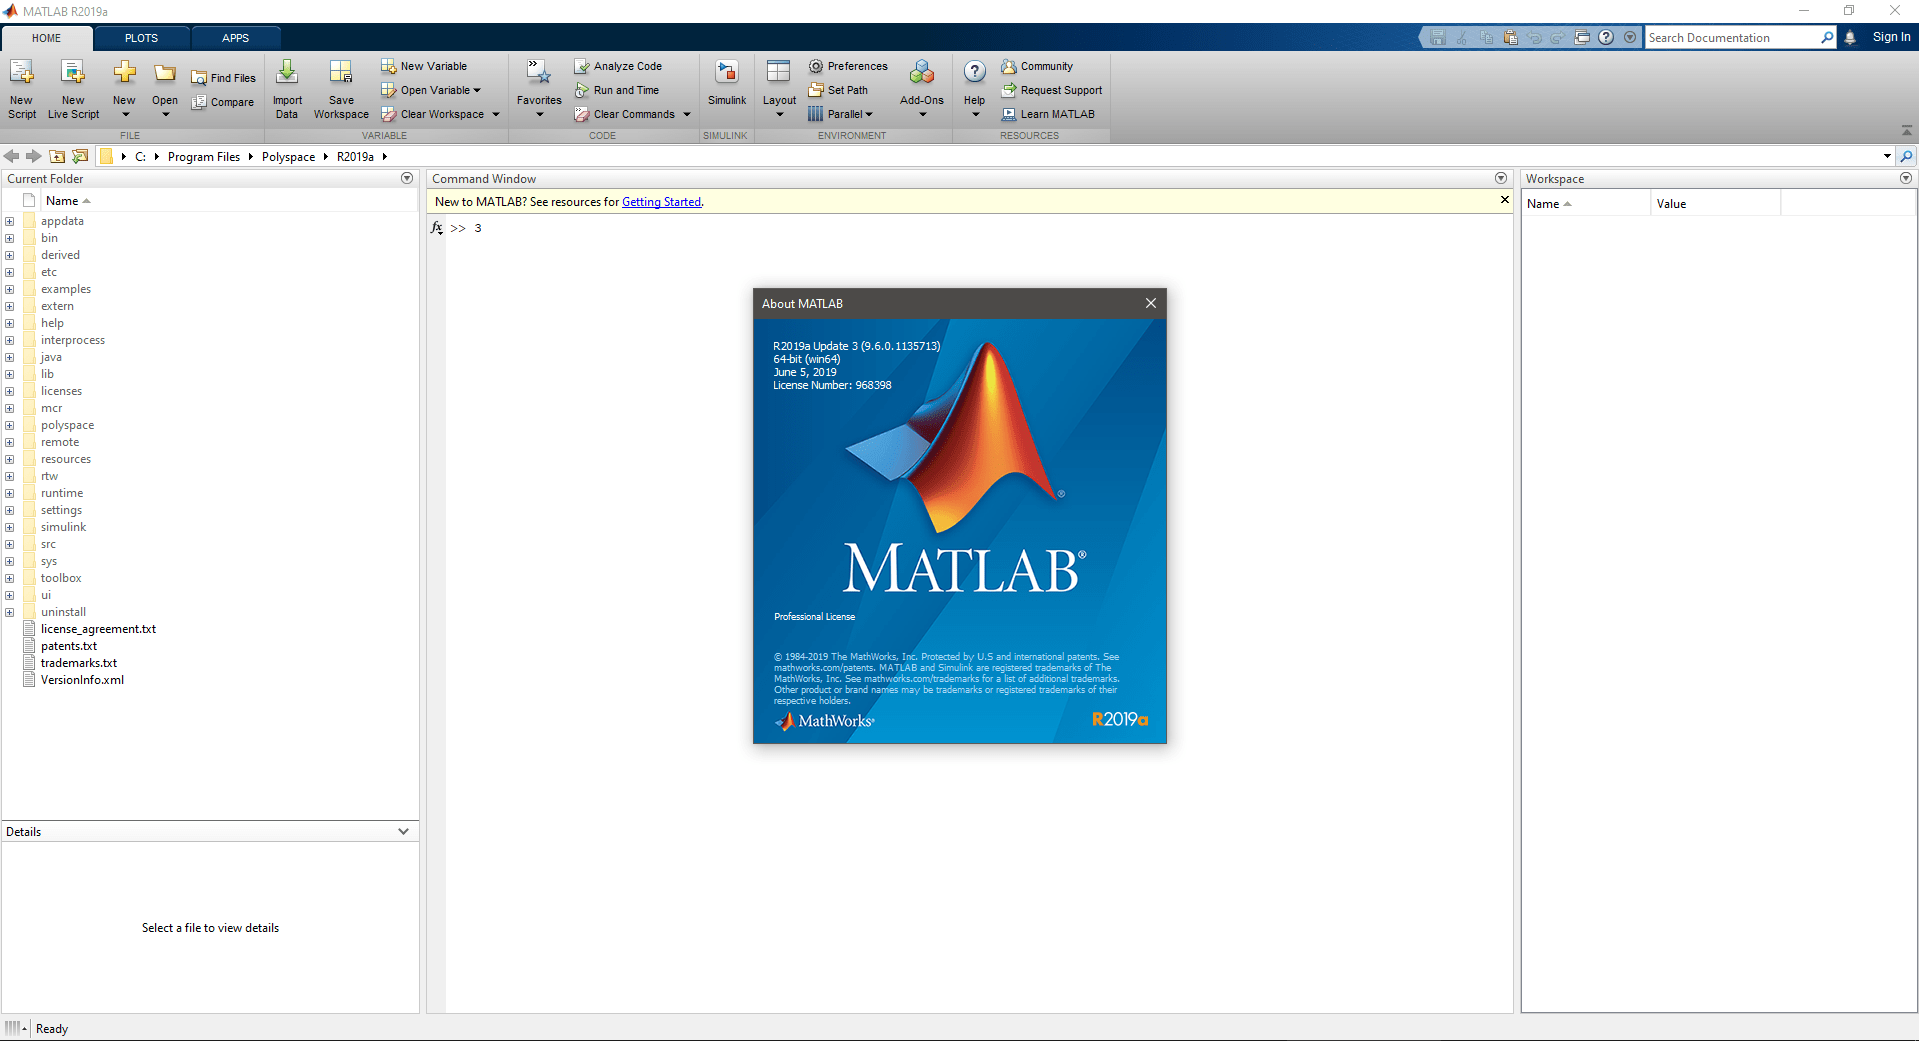 Download MathWorks MATLAB R2019a v9 6 0 1135713 Update 3